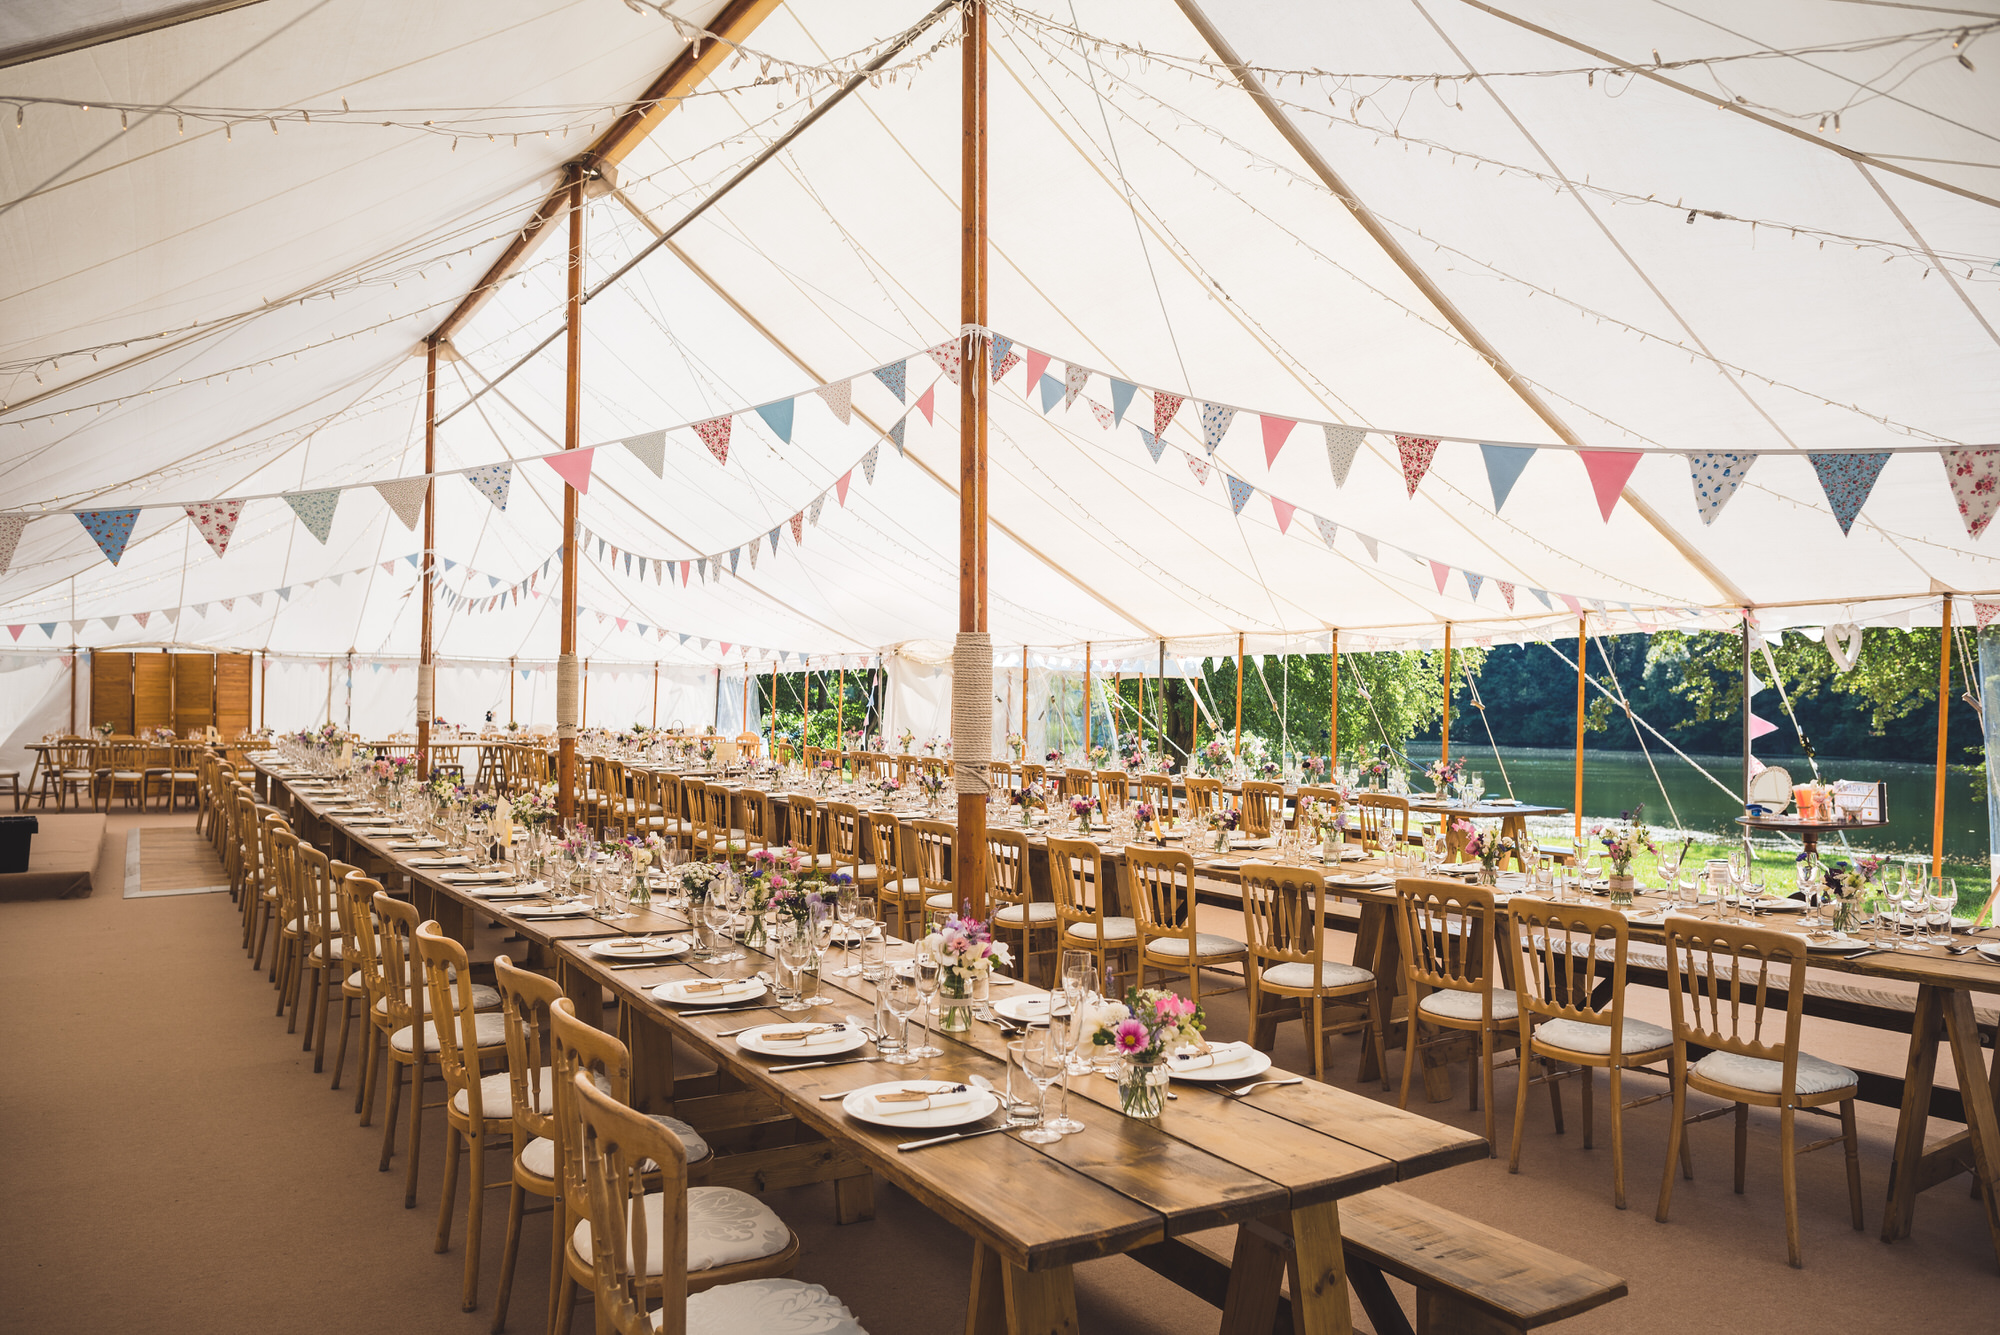 Tortworth lake marquee wedding 13